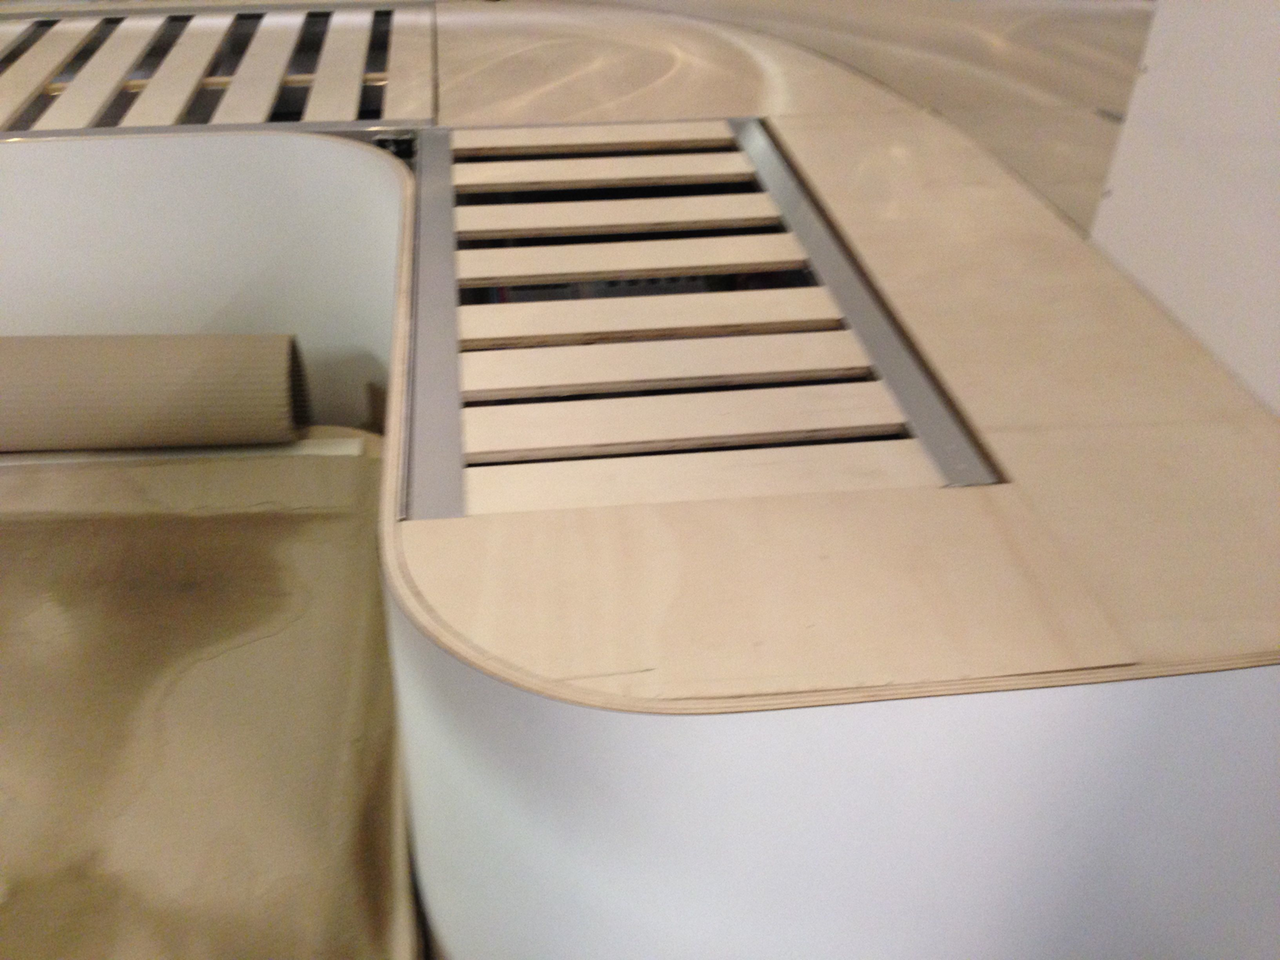 Curved Airstream Caravan Seating